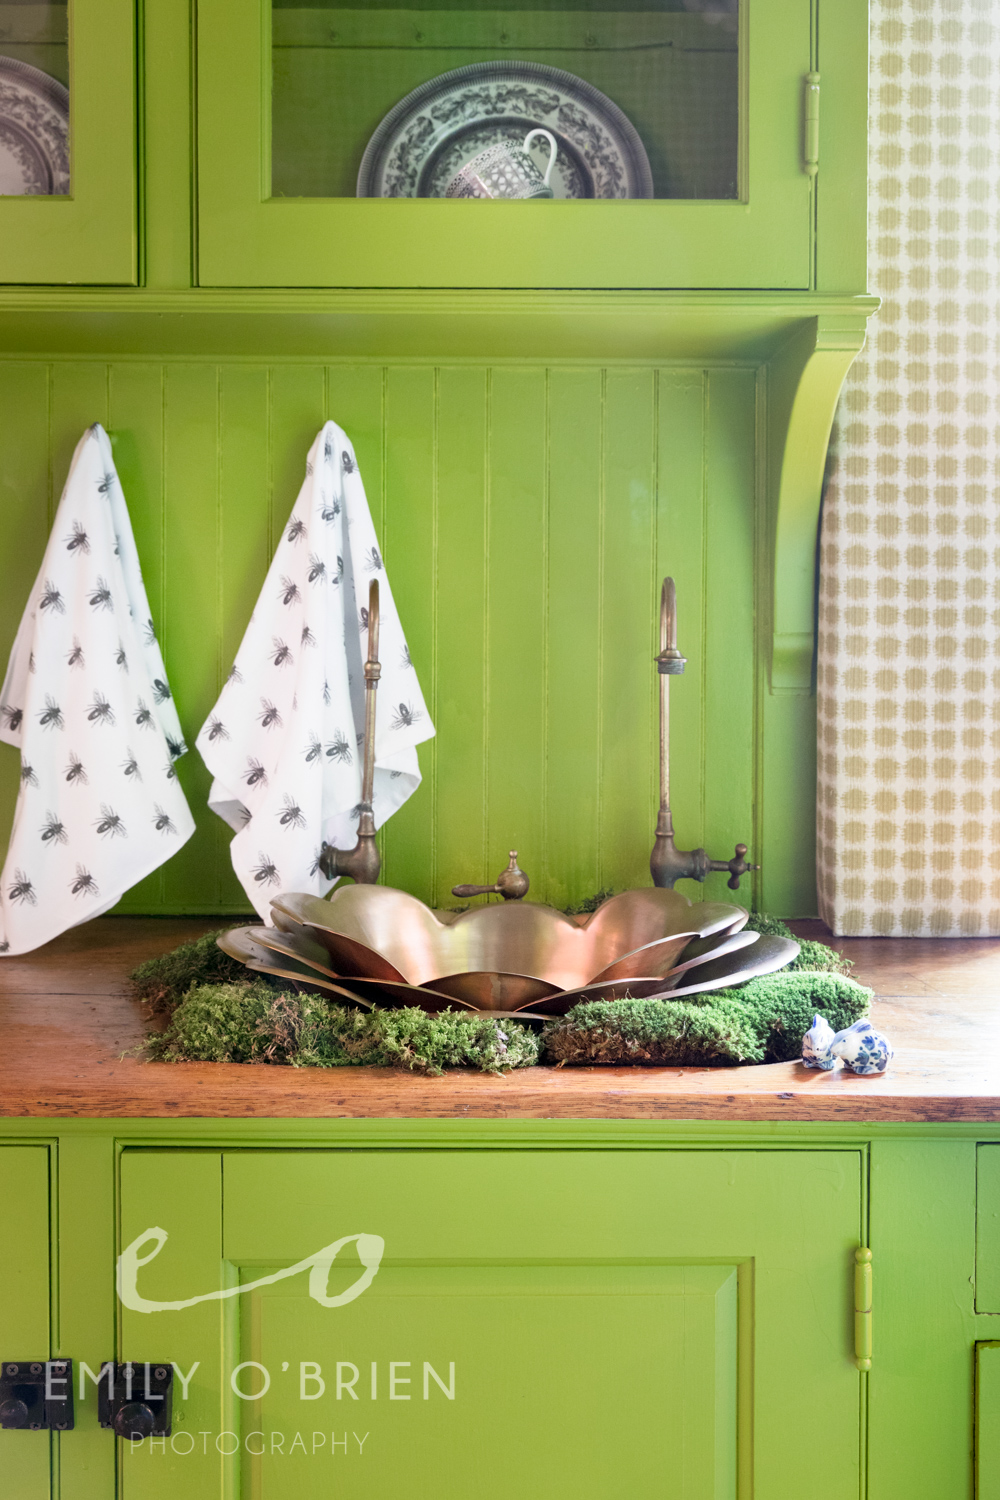 @kimmacumber my good friend and client has a room in the @Bostonshowhouse this year! I love everything about this butler pantry sink area - the copper petals, the faucet, the moss, the fly towels, and especially the little porcelein bunnies. Congrats Kim, your butler's pantry is a class act